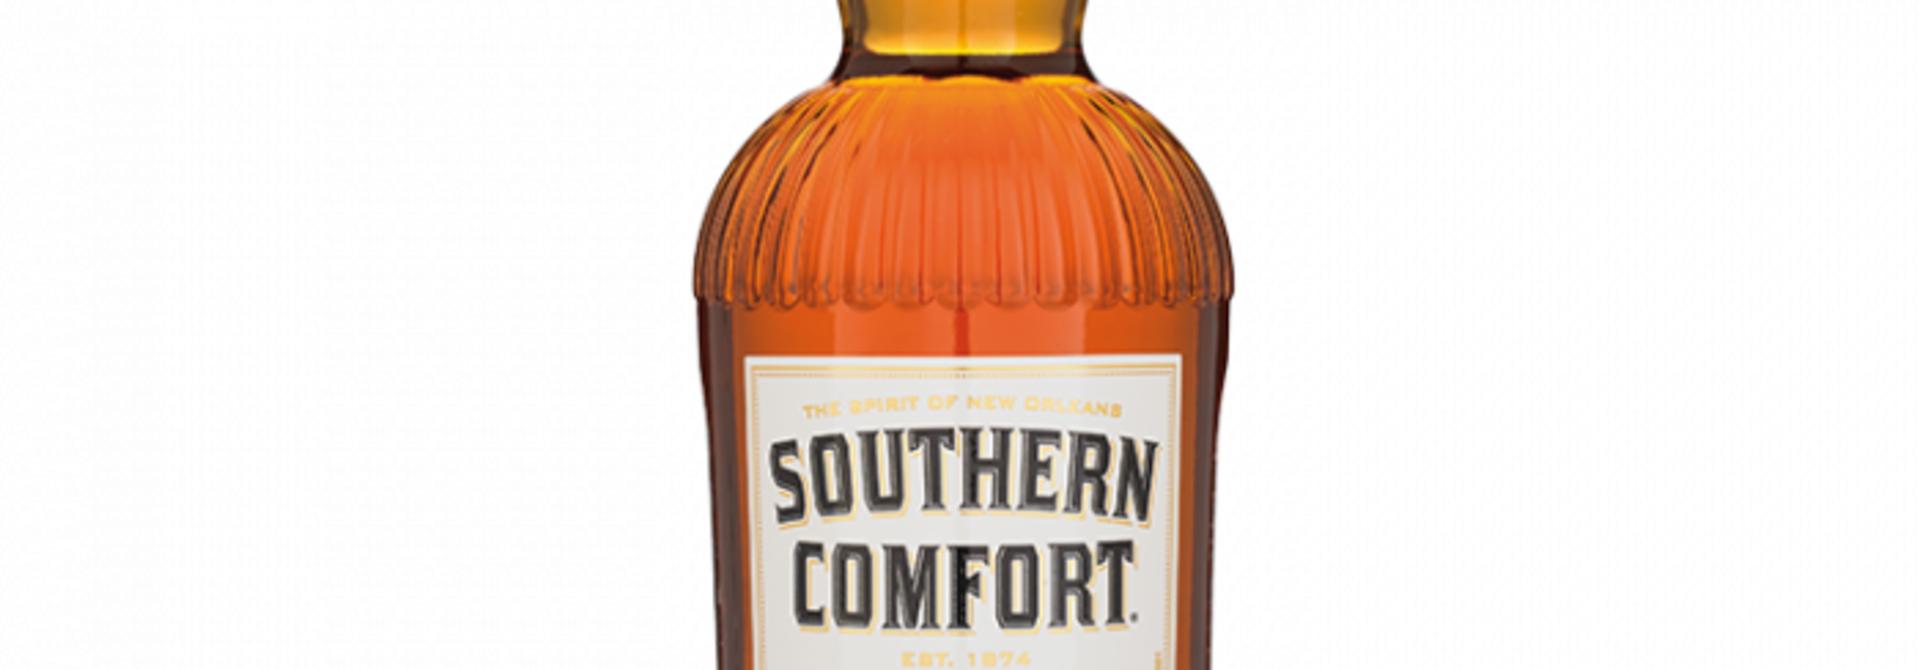 SOUTHERN COMFORT 0.7ltr